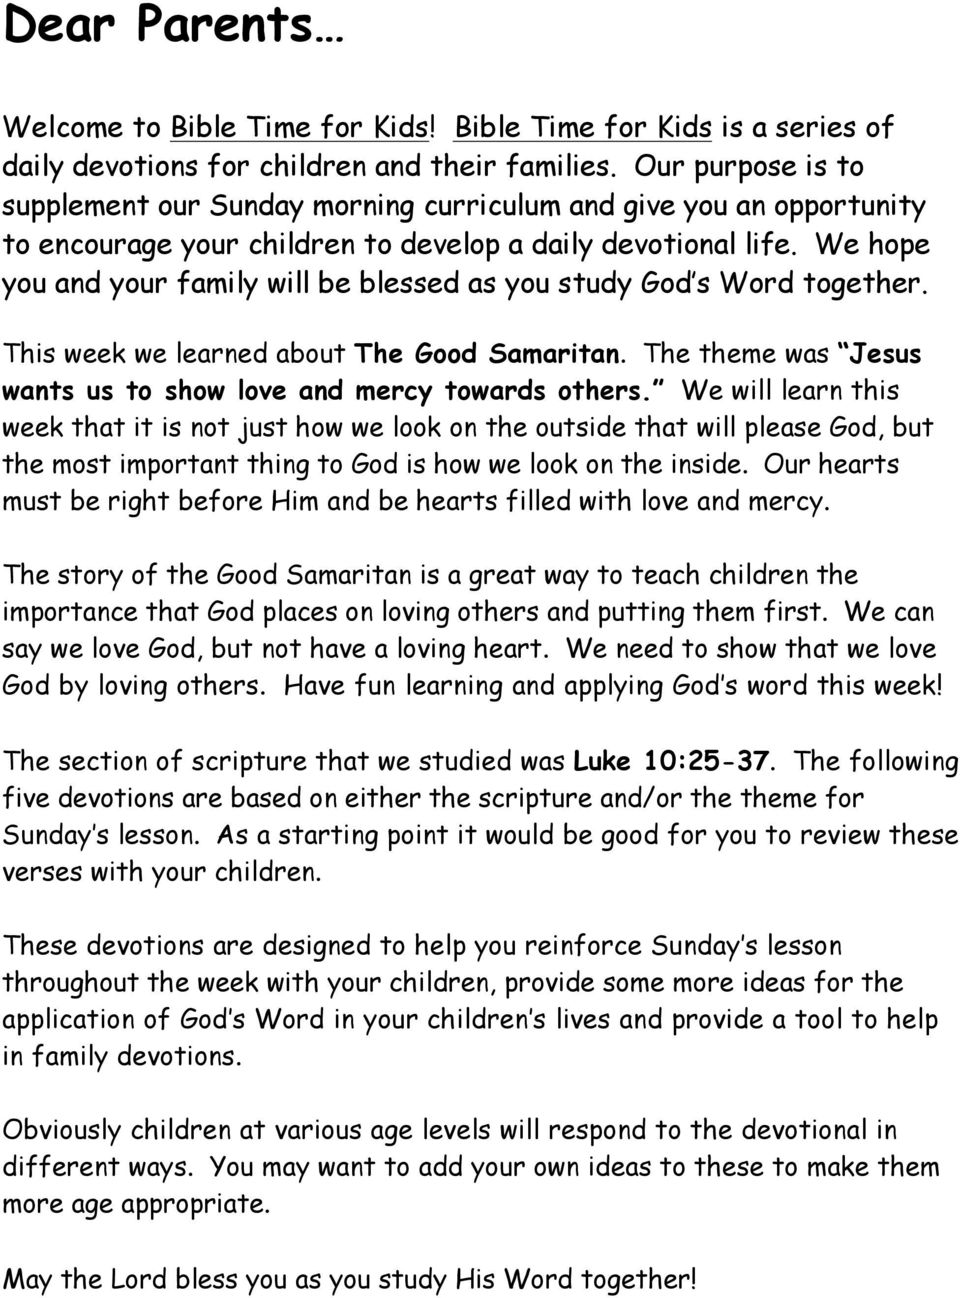 We hope you and your family will be blessed as you study God s Word together. This week we learned about The Good Samaritan. The theme was Jesus wants us to show love and mercy towards others.